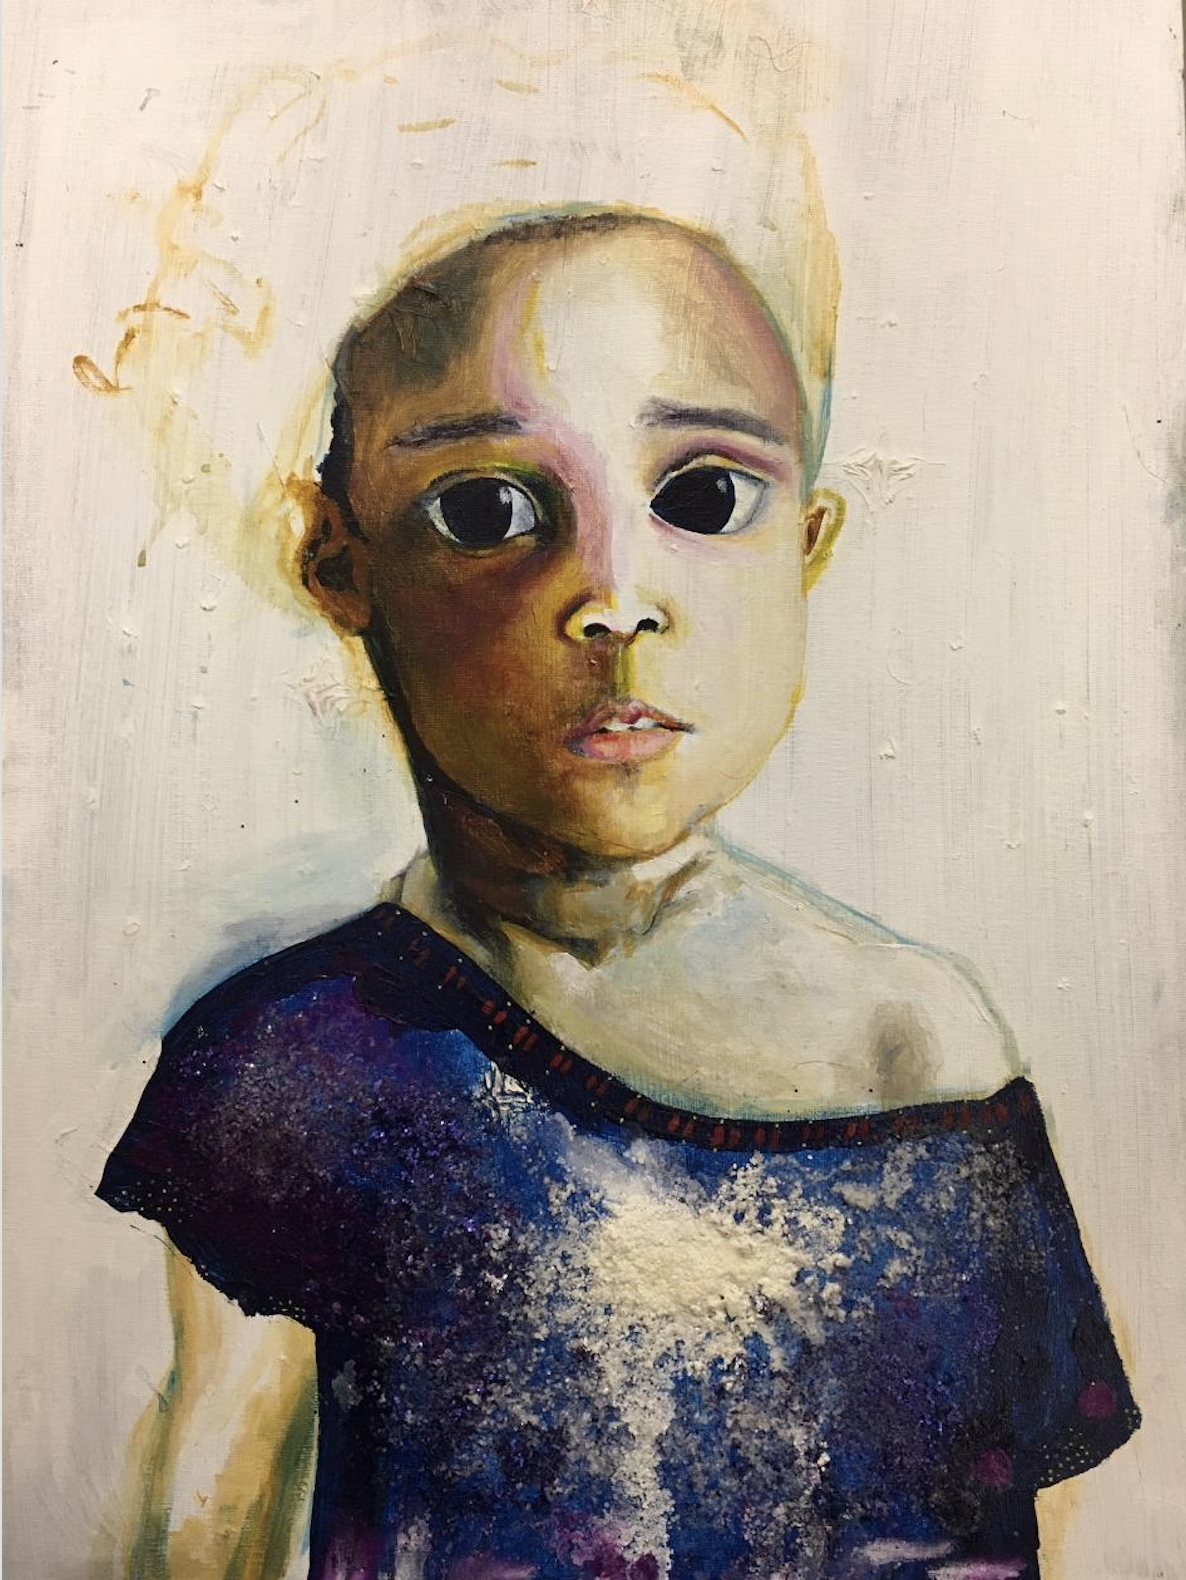 A panting of a little girl with big dark eyes in muted colors.